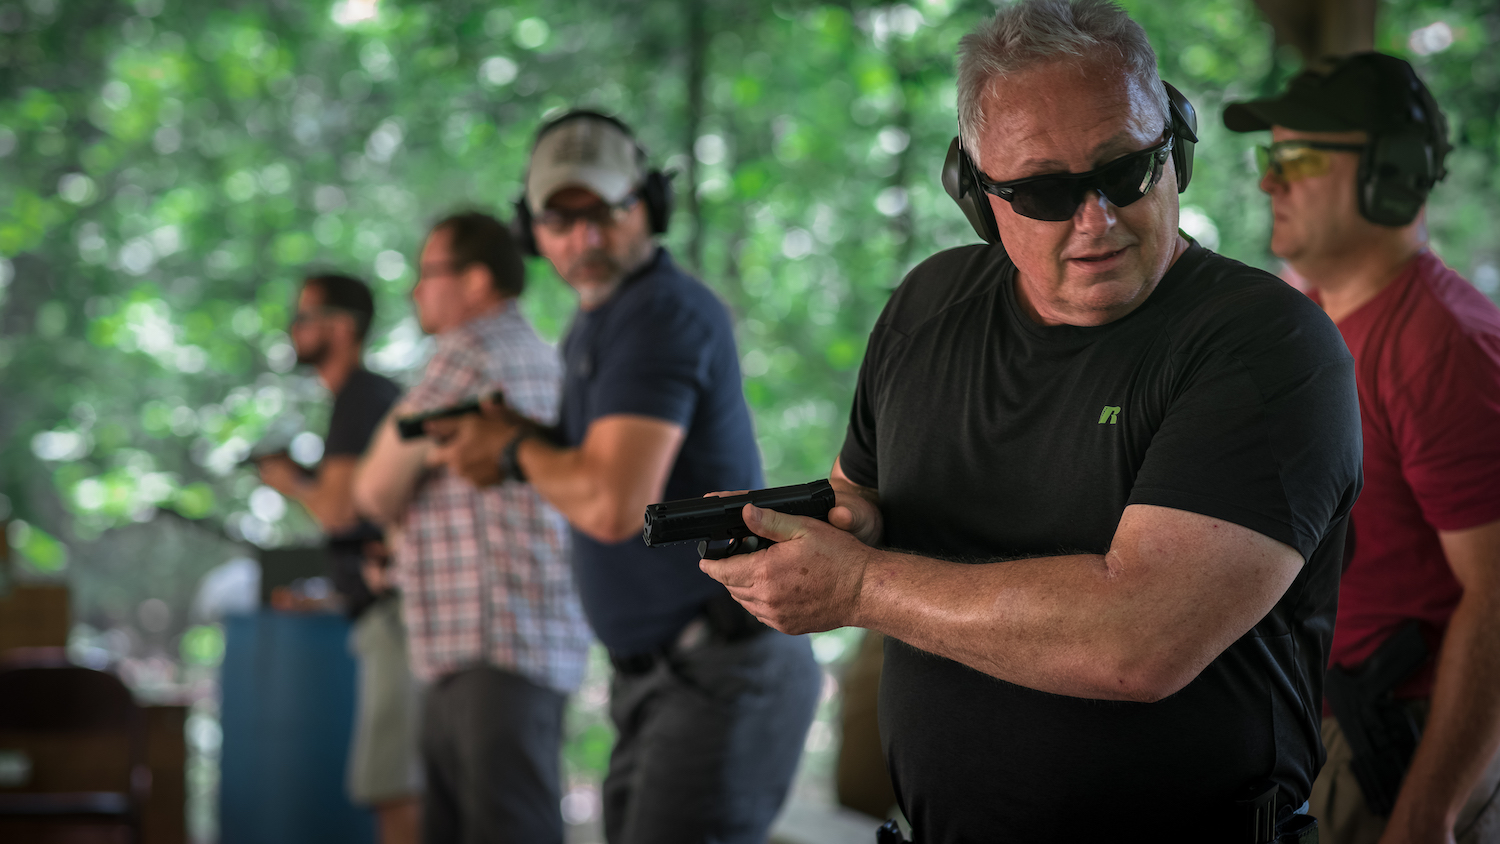 Defensive Shooting Course Options